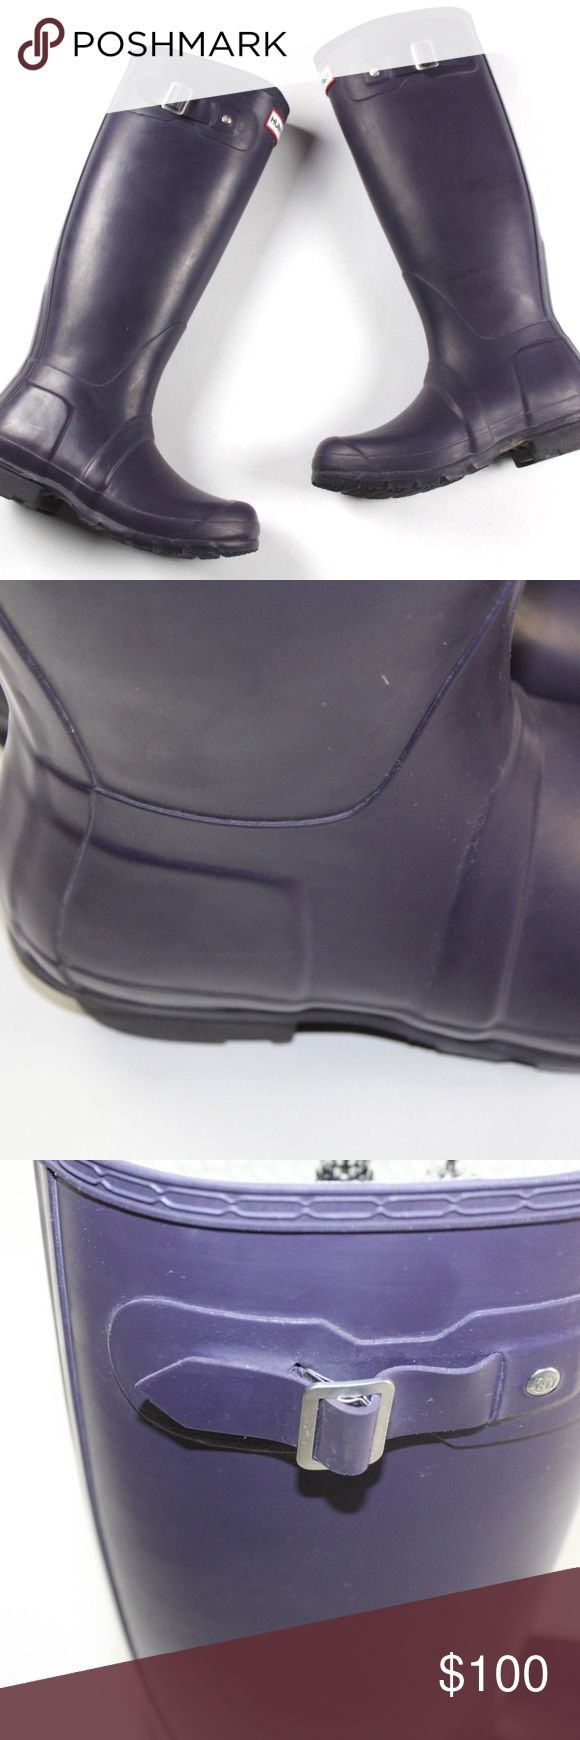 Hunter Womens 5 Original Tall Rubber Rain Boots Hunter Original Tall Rubber Rain Boots  Excellent boots  Comes from a smoke-free household  The size is 5  Purple  Rubber  Check out my other items for sale in my store! Hunter Shoes Winter & Rain Boots